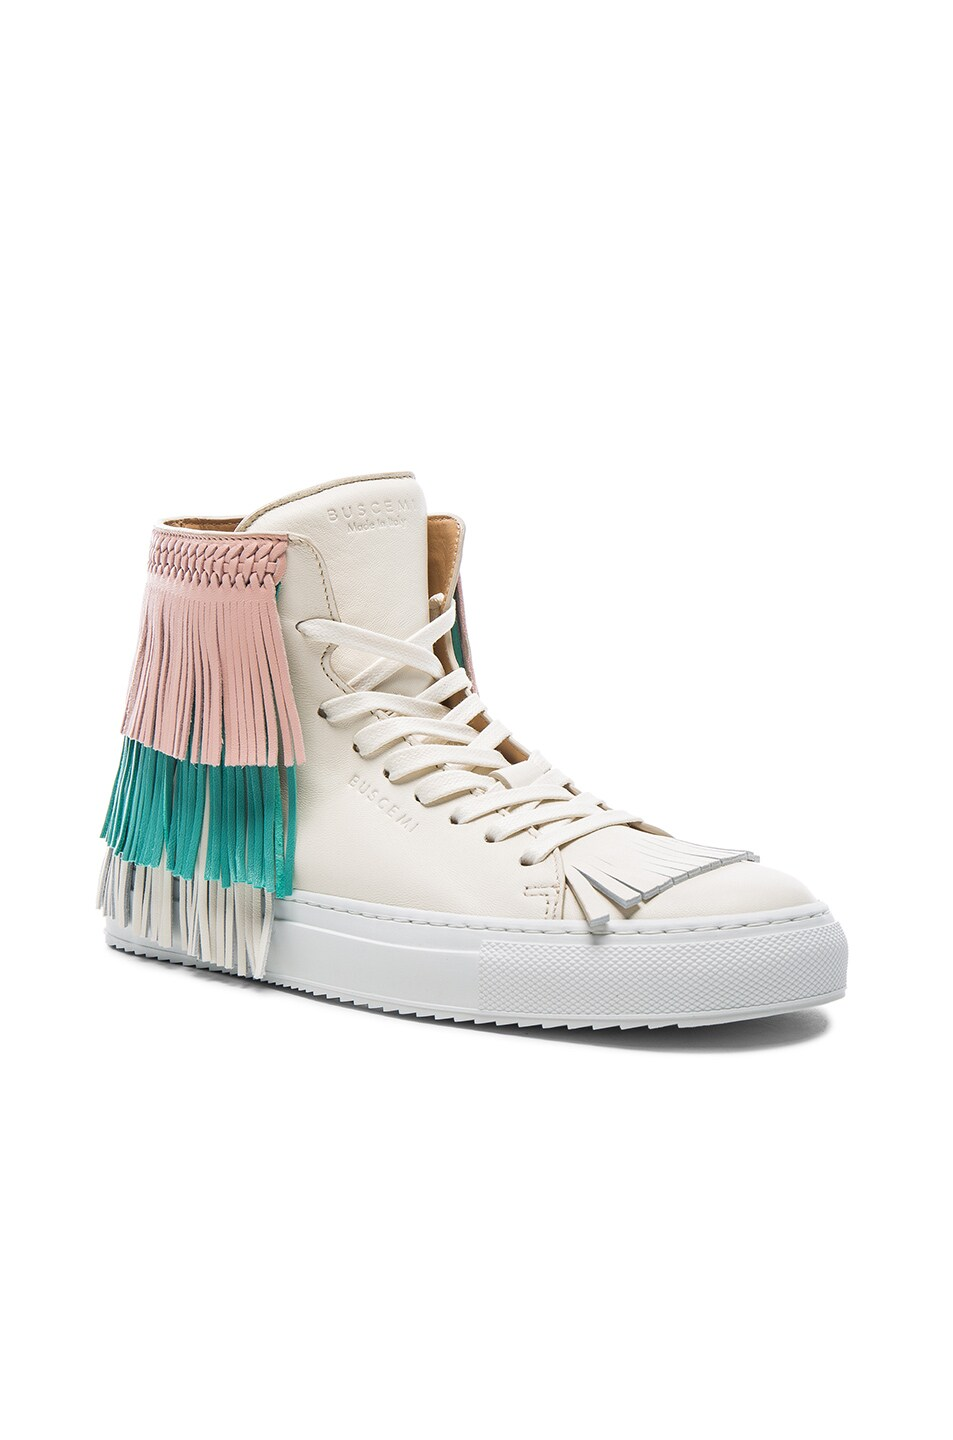 Image 2 of Buscemi 125MM Leather New Fringe Sneakers in Cream, Pink & Aqua Marine